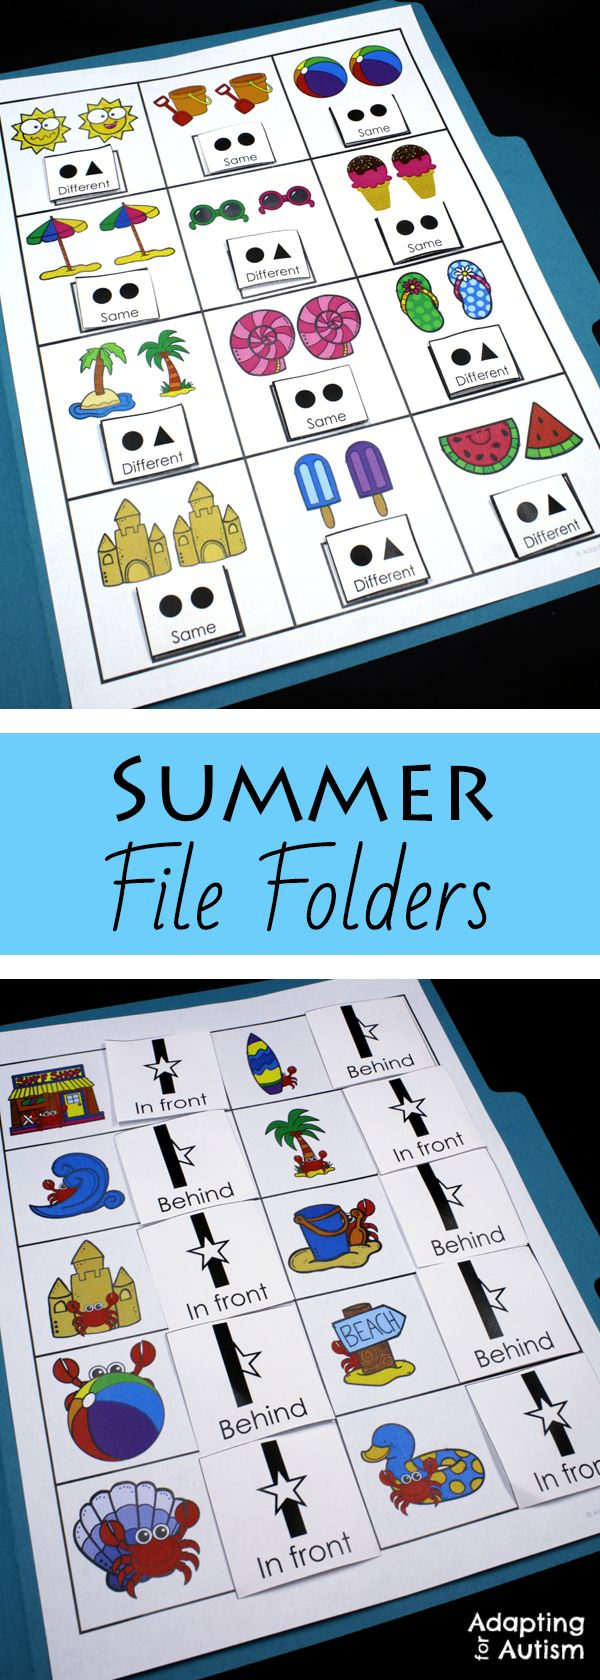 This summer file folder activity pack is full of basic concepts practice for your special education or speech therapy students. Includes 10 concepts and 2 levels each including many visual supports for your students with autism.